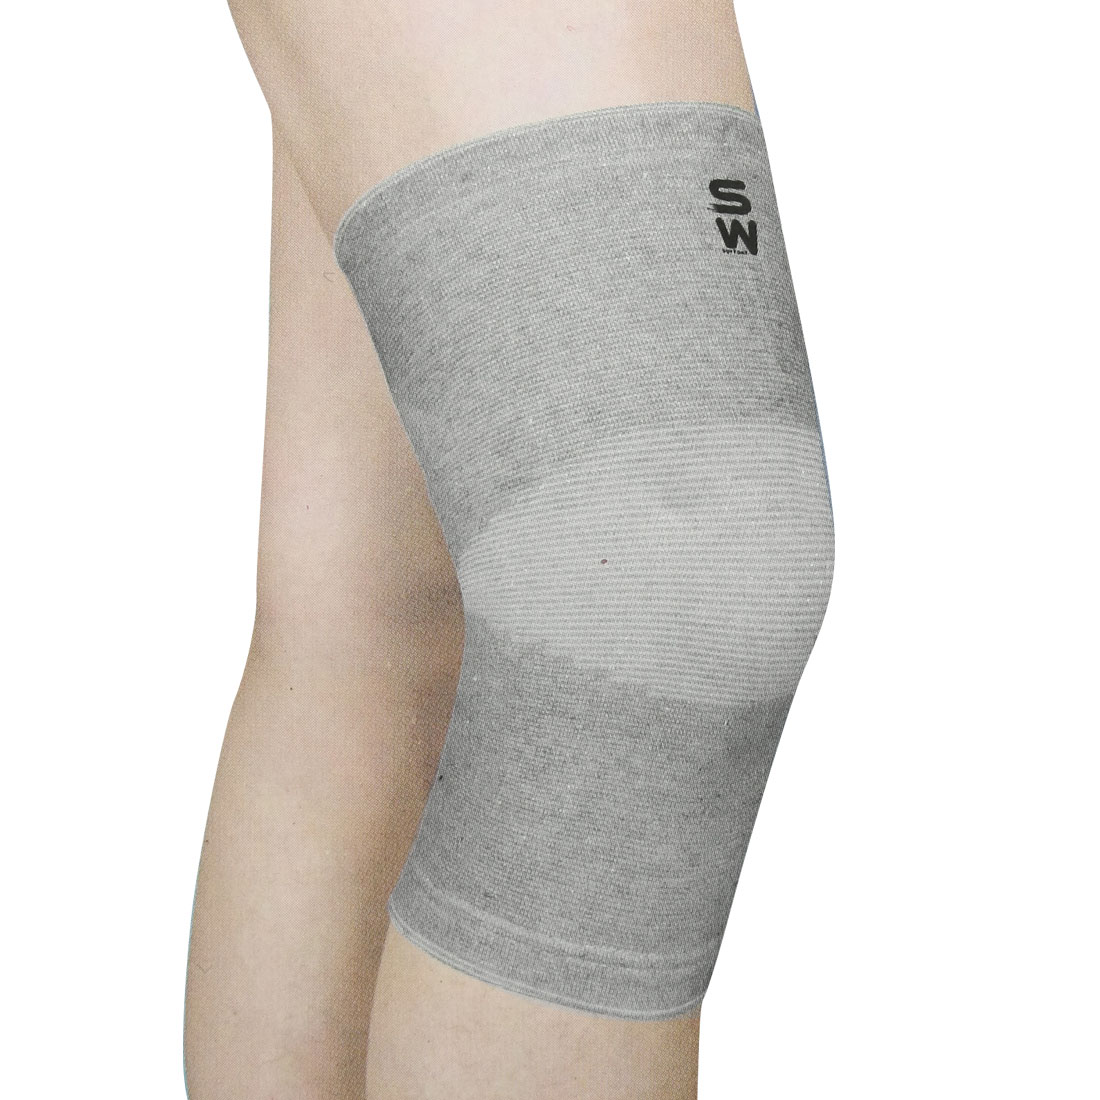 Gray White Hoop Loop Fastener Elastic Sports Knee Support Brace Protector